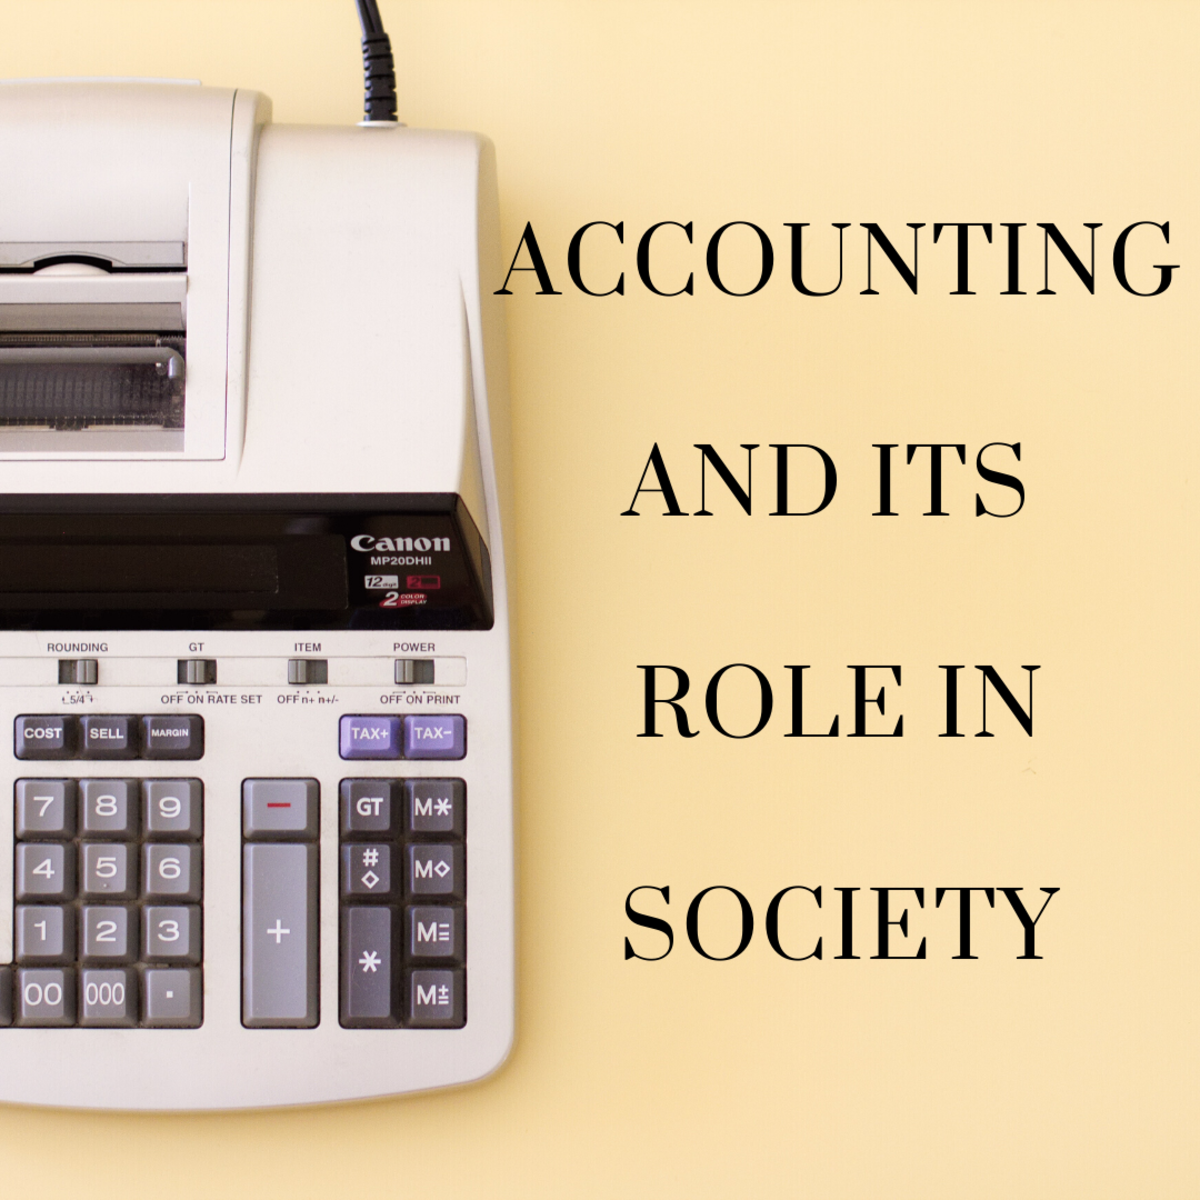 Accounting and Its Role in Society